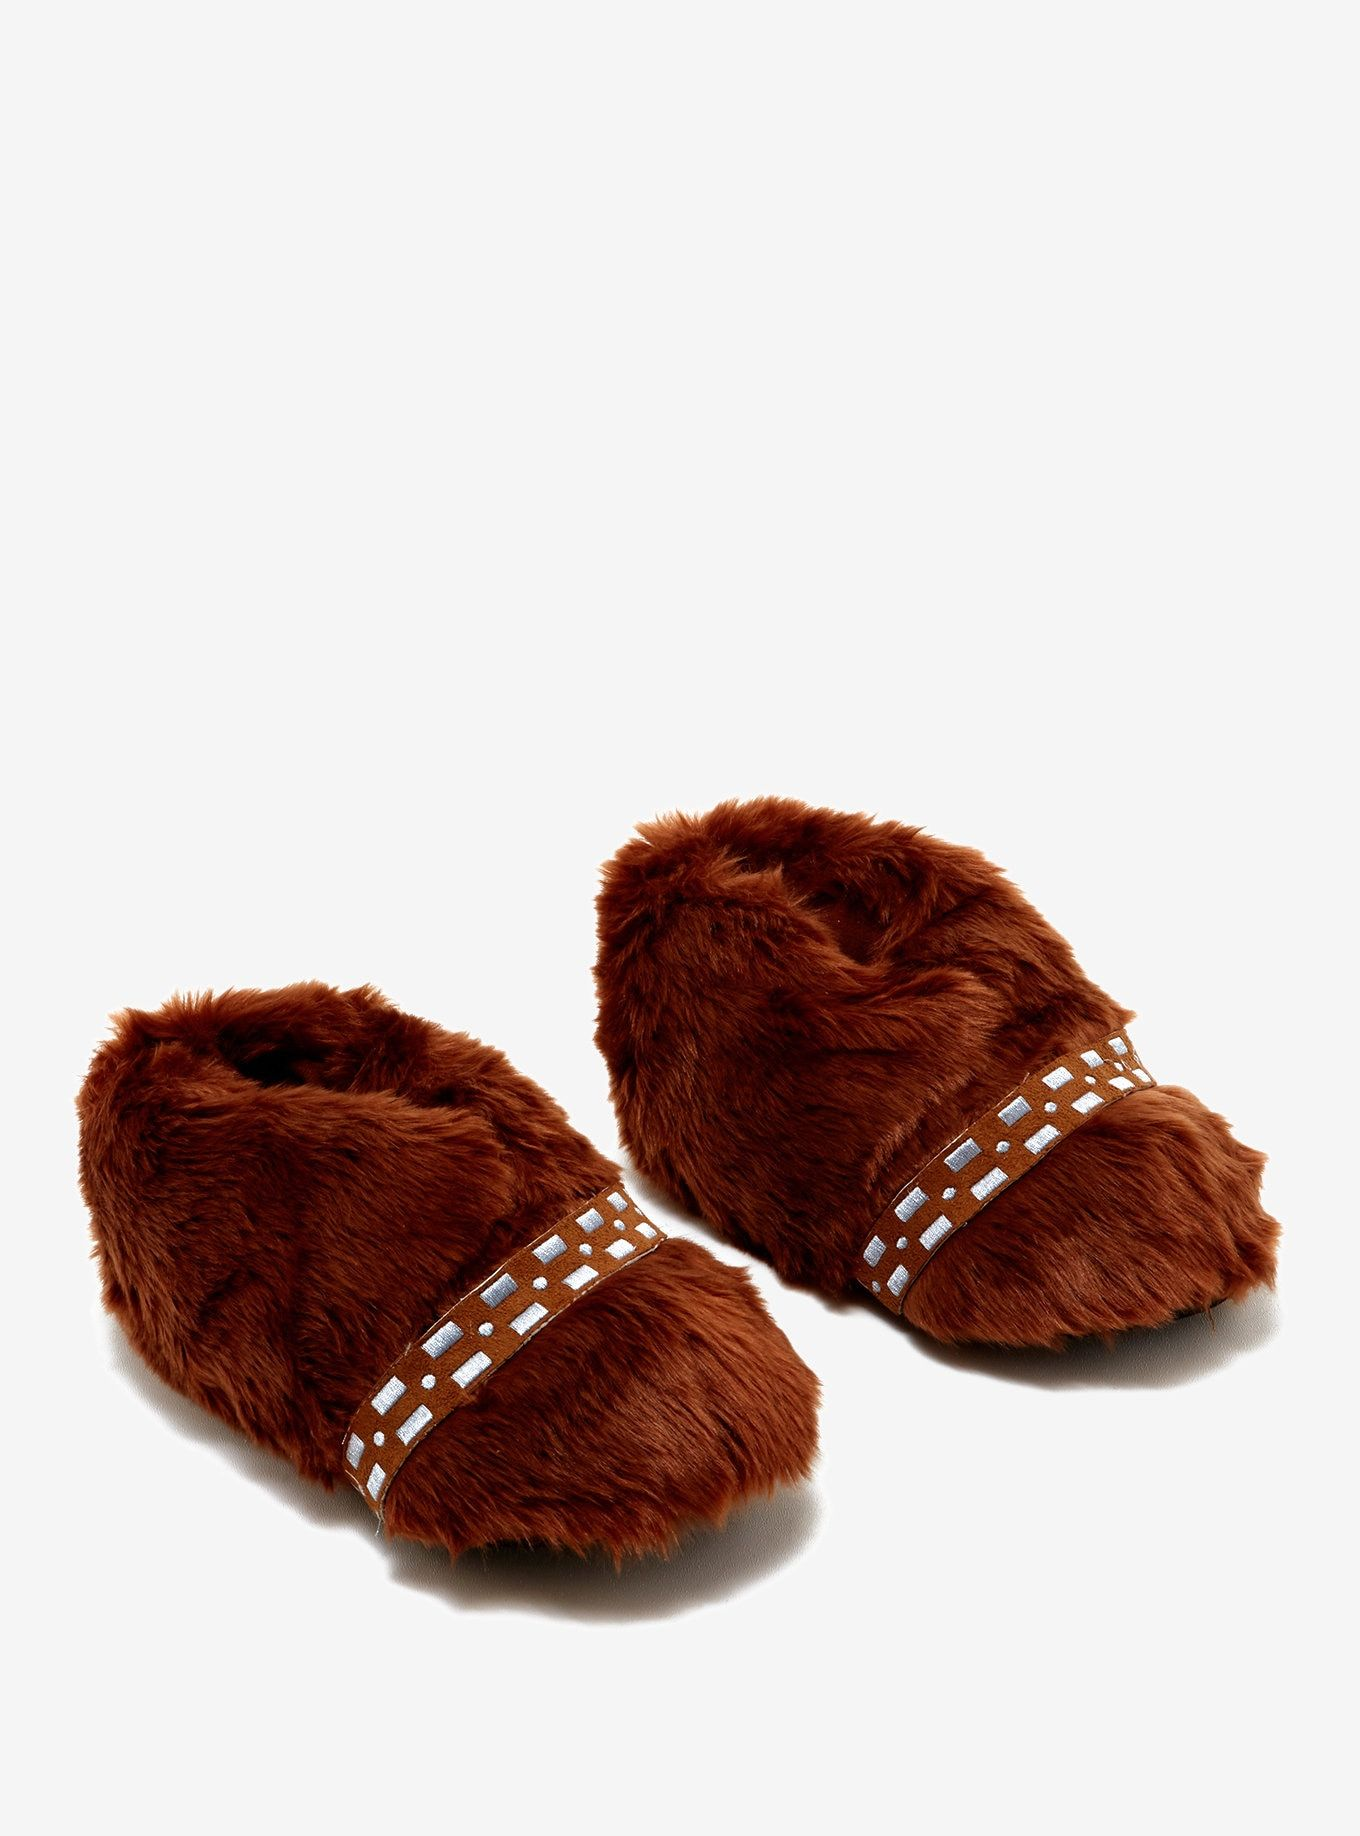 9e1a427d8bf Star Wars Chewbacca Slippers in 2019 | Slippers | Slippers ...